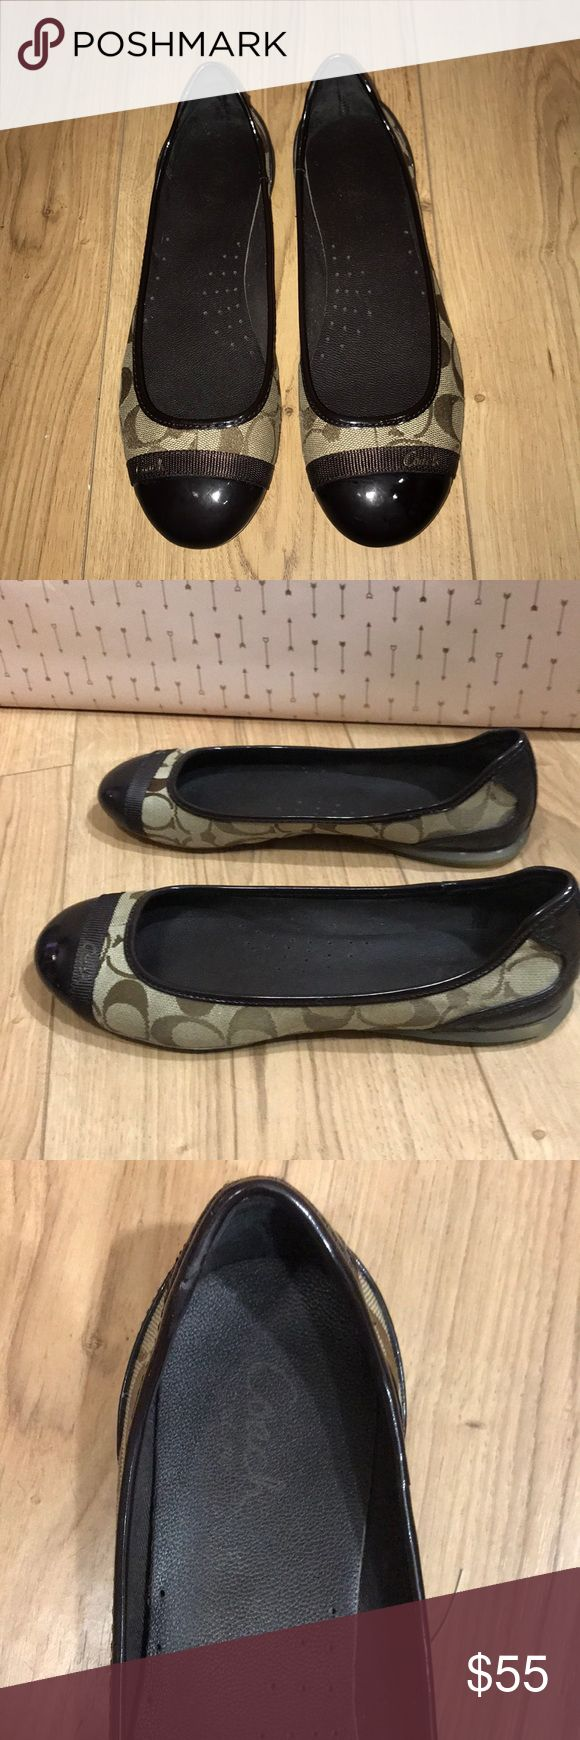 Coach flats Coach flats in great condition! Only worn a few times. They are a 7.5 but I think run a tad big Coach Shoes Flats & Loafers